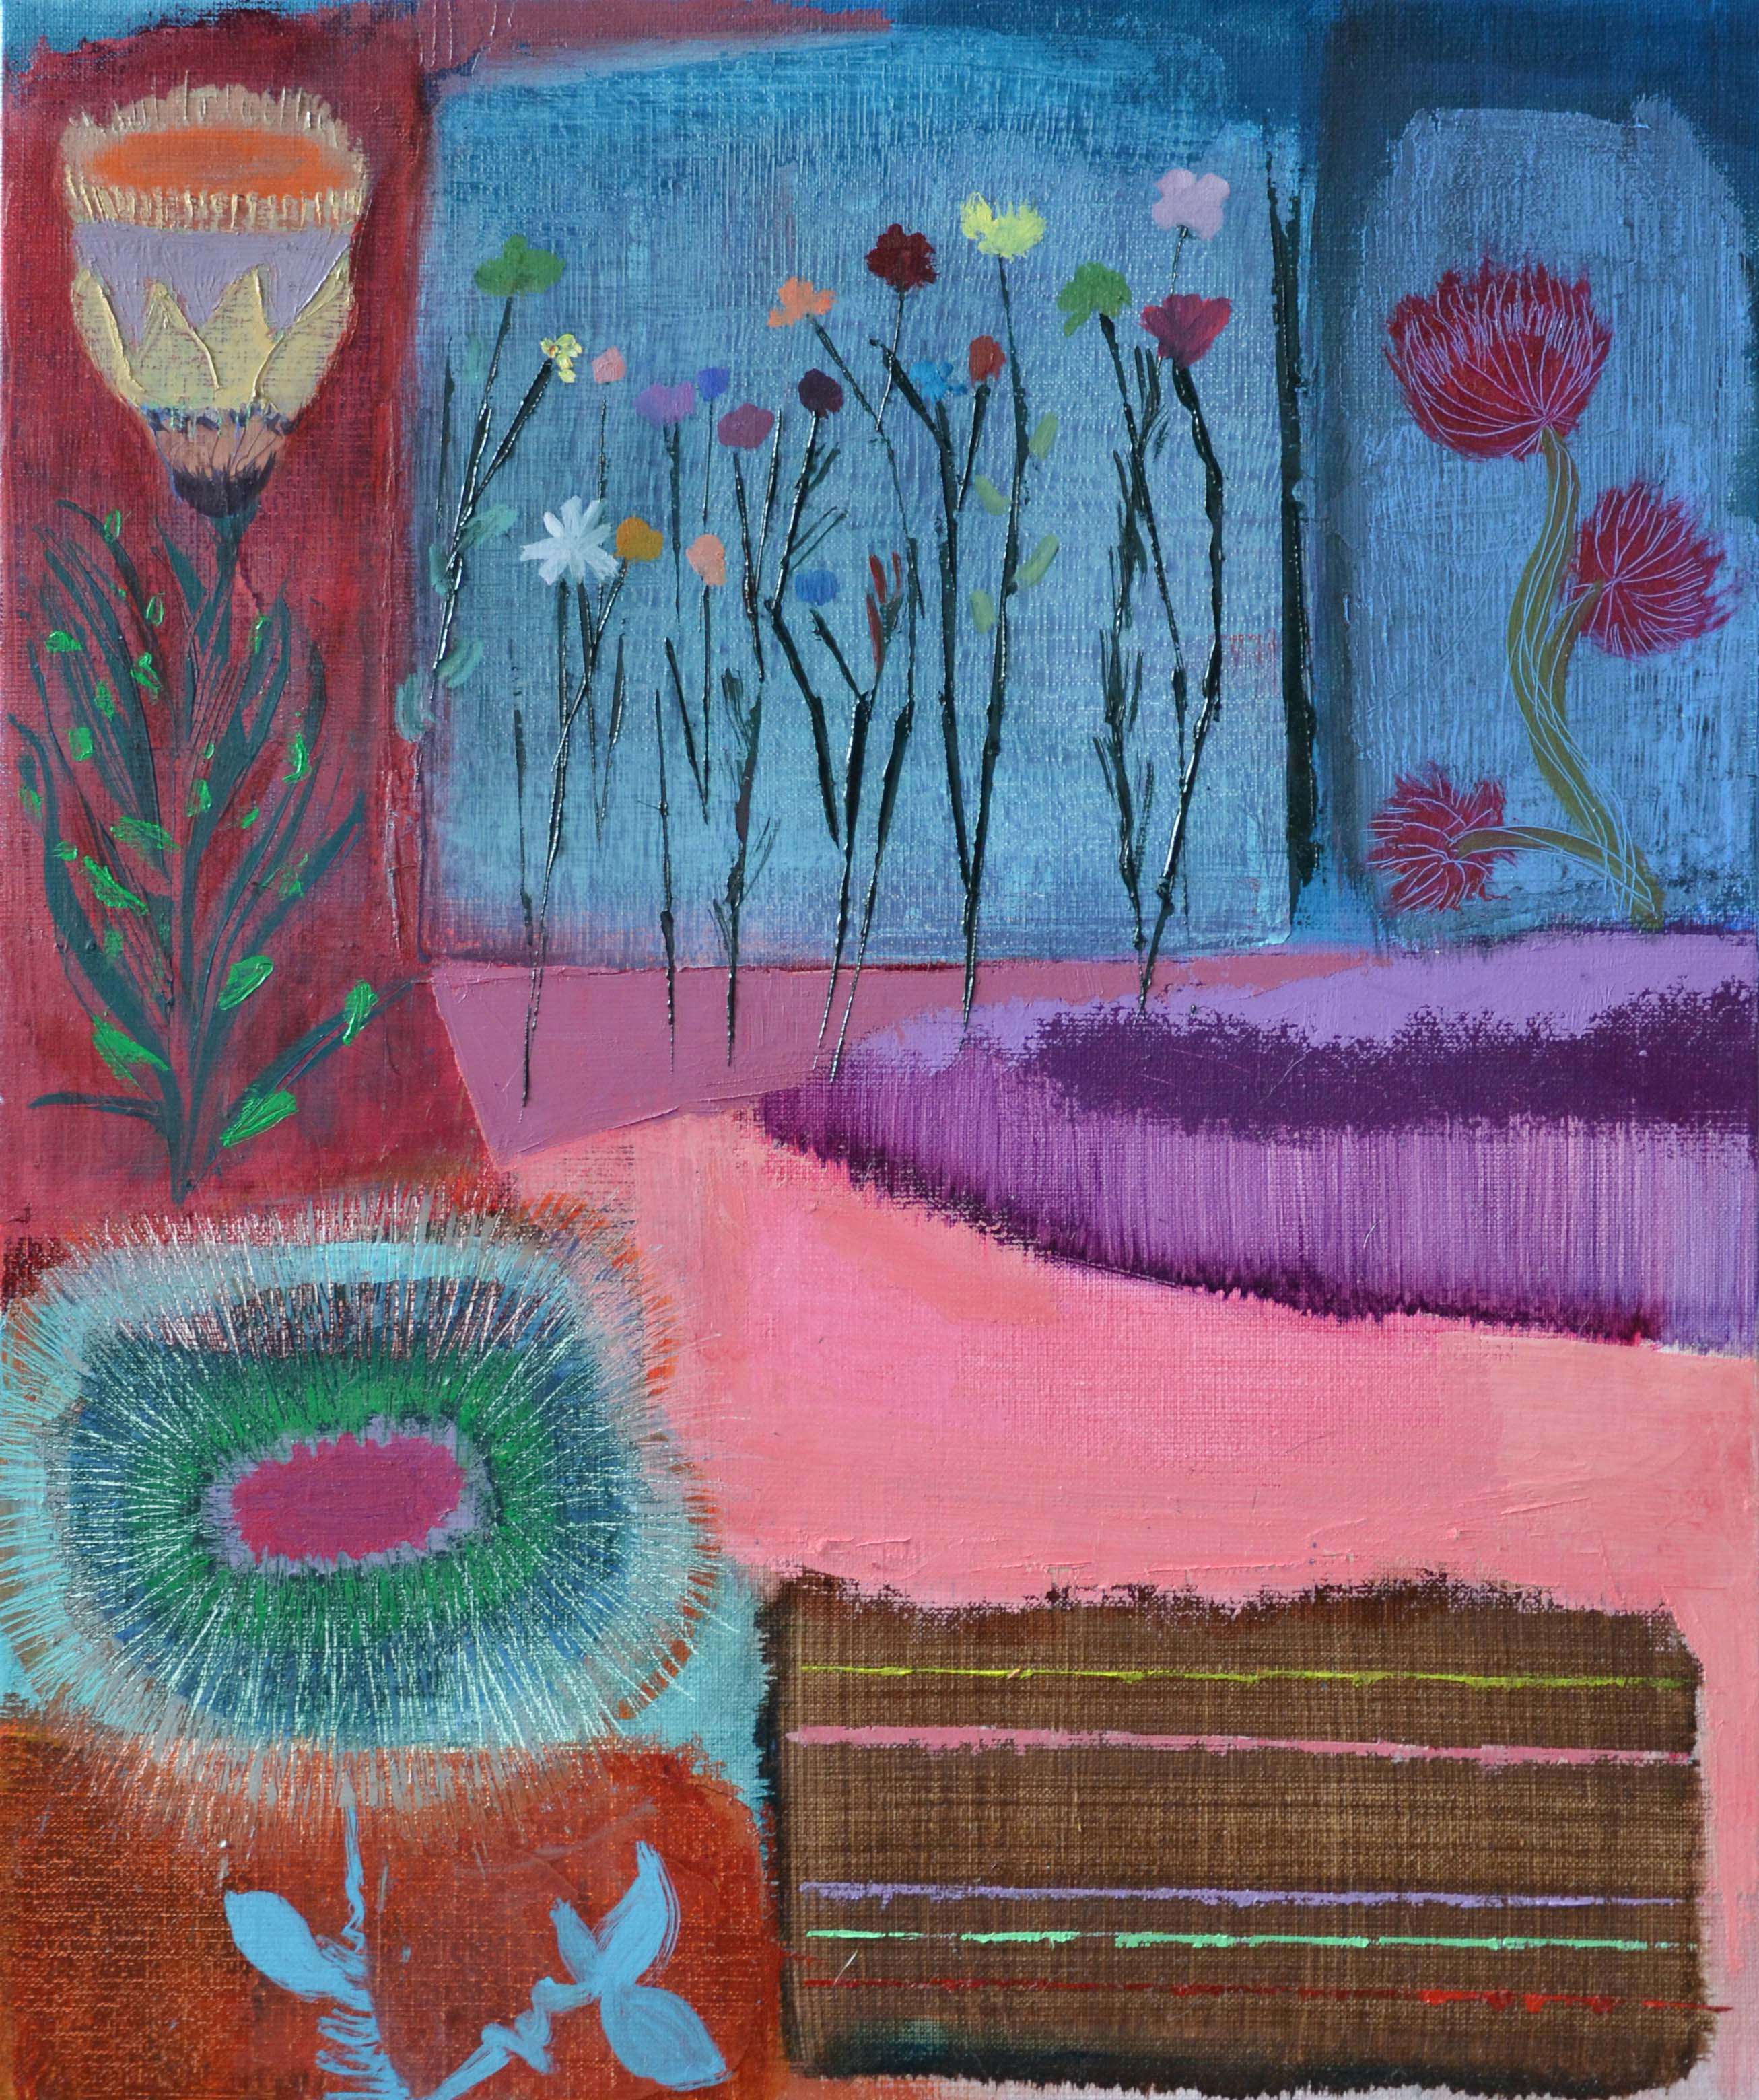 Mini Fleurs, 2014, Private collection